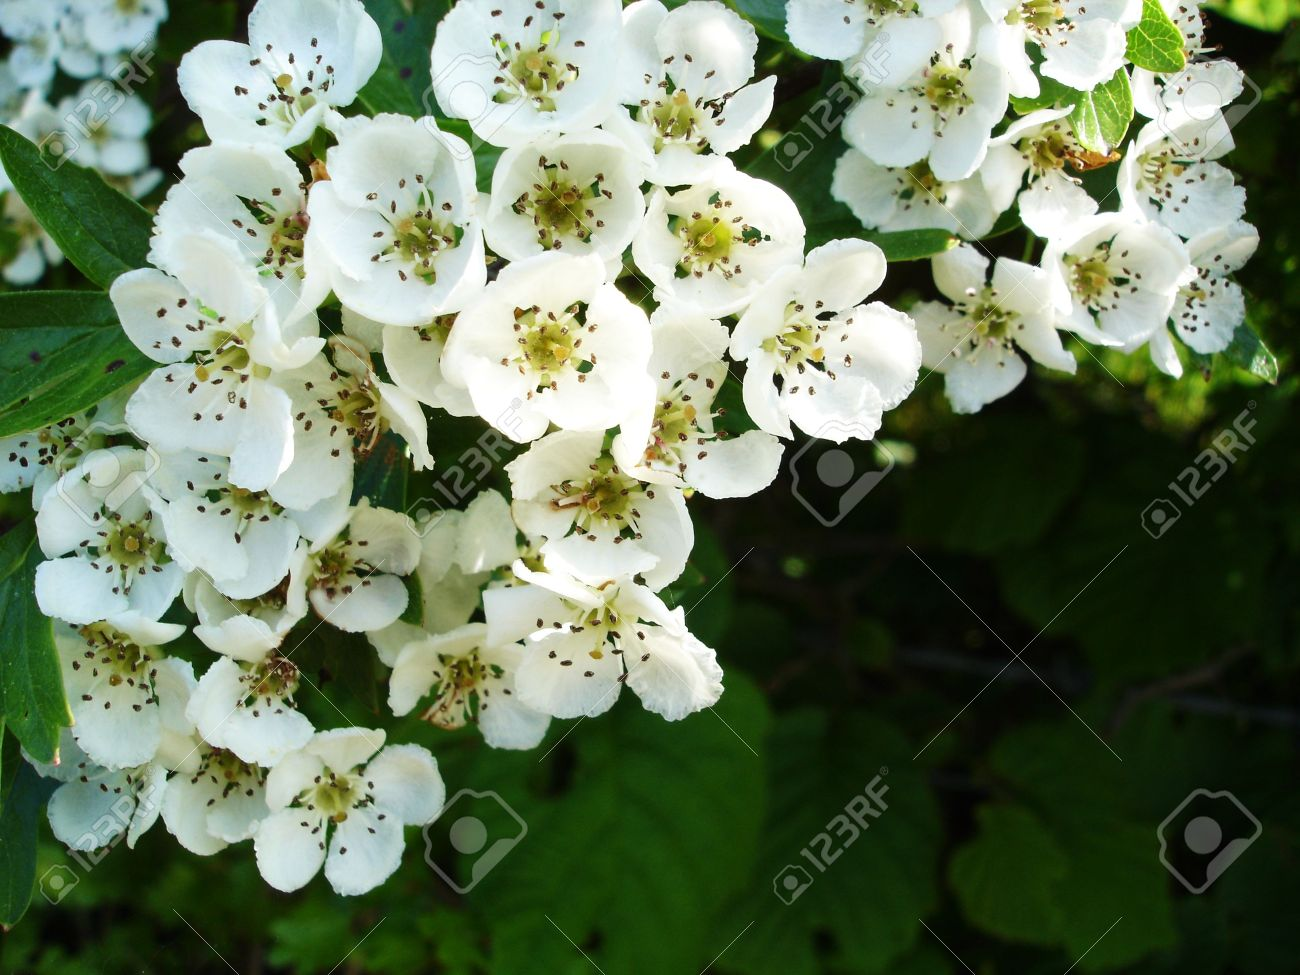 White Flowers Of The Hawthorne Bush Stock Photo Picture And Royalty